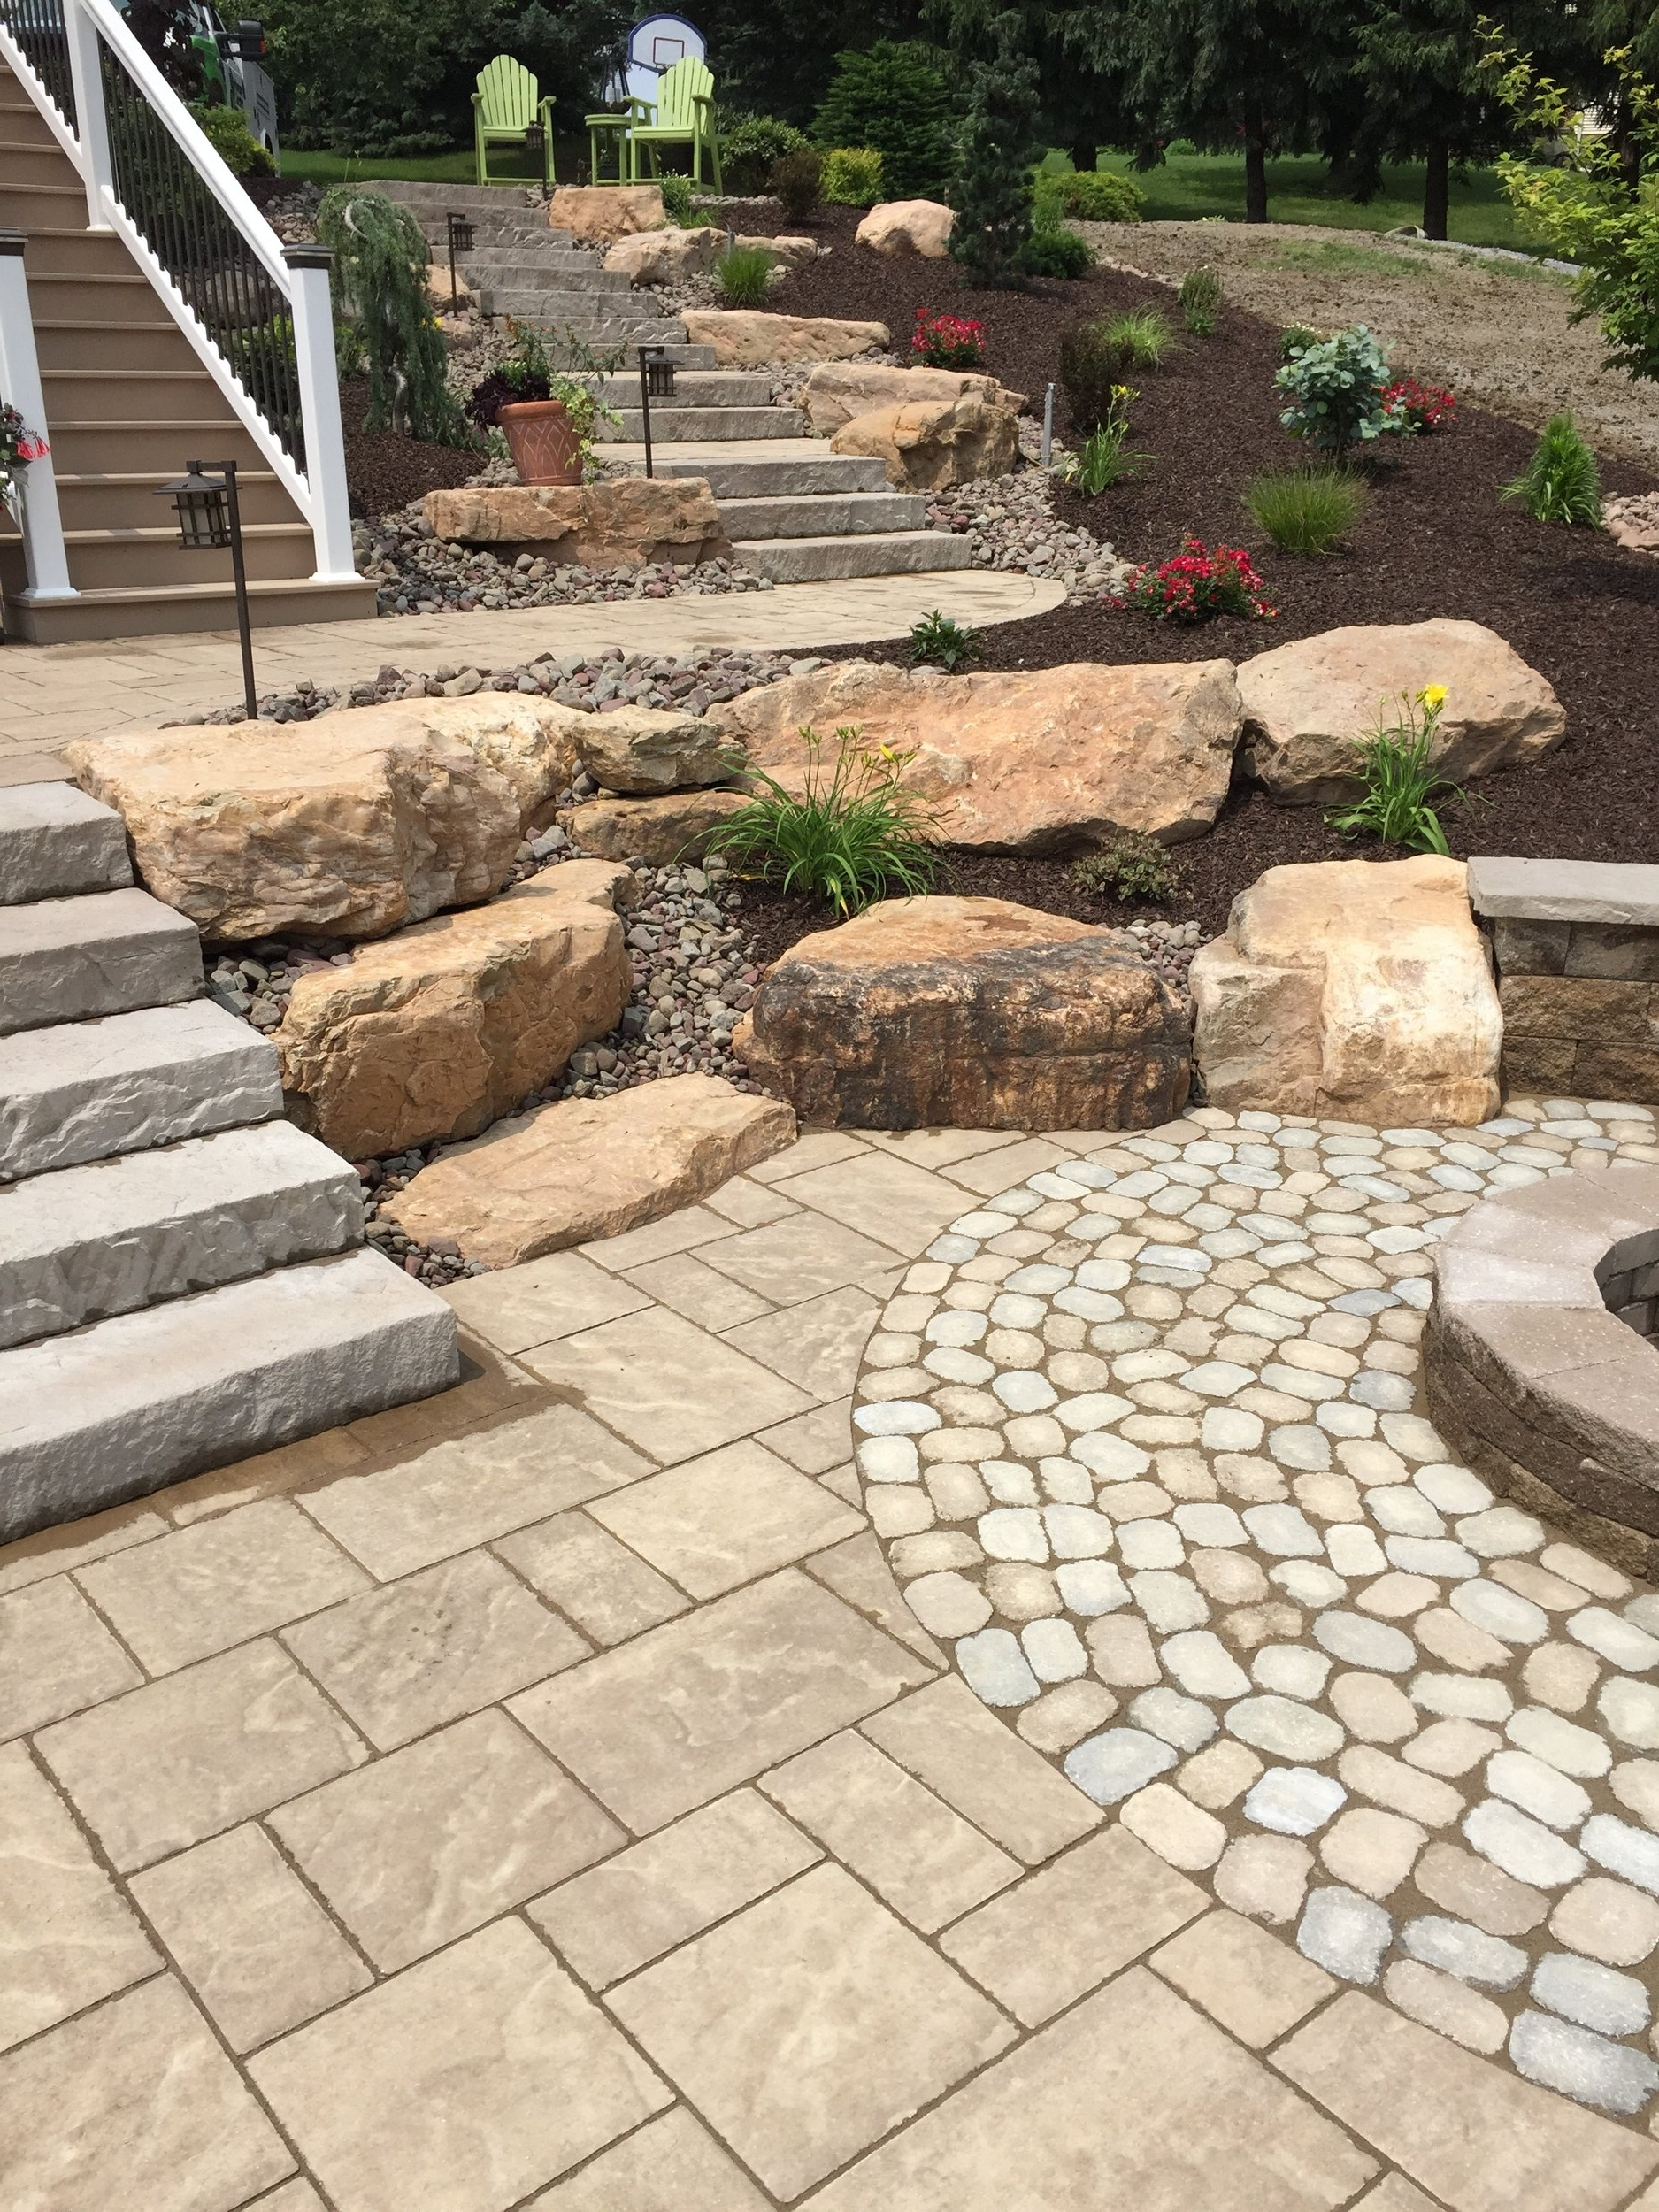 Pottsville, PA landscape contractor with top landscape maintenance service